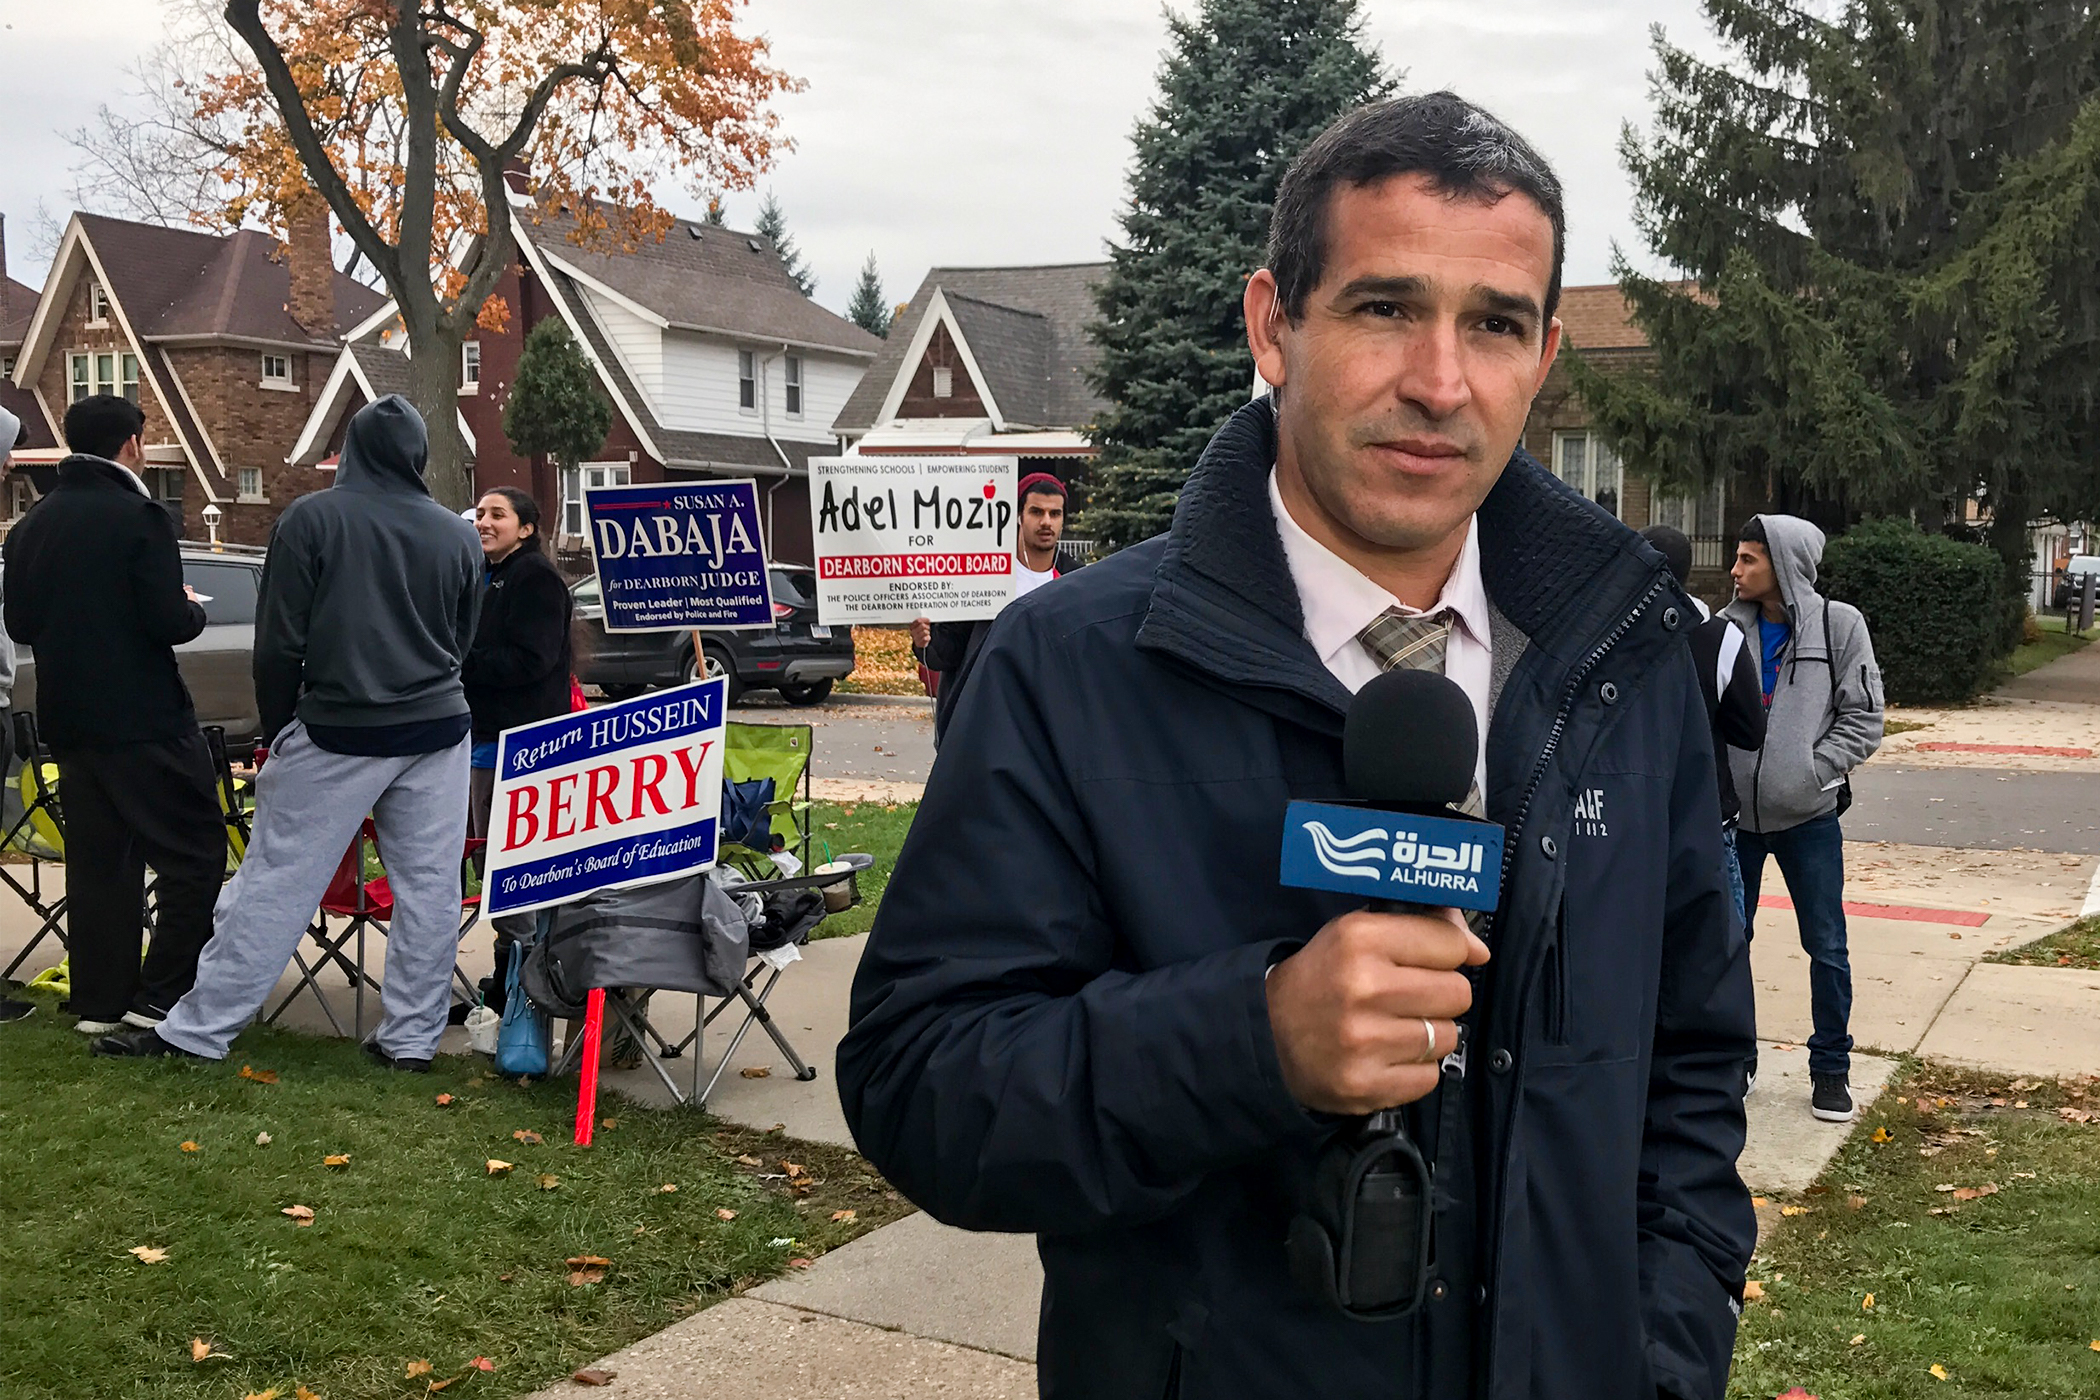 BBG networks provide a front-row seat to historic U.S. elections